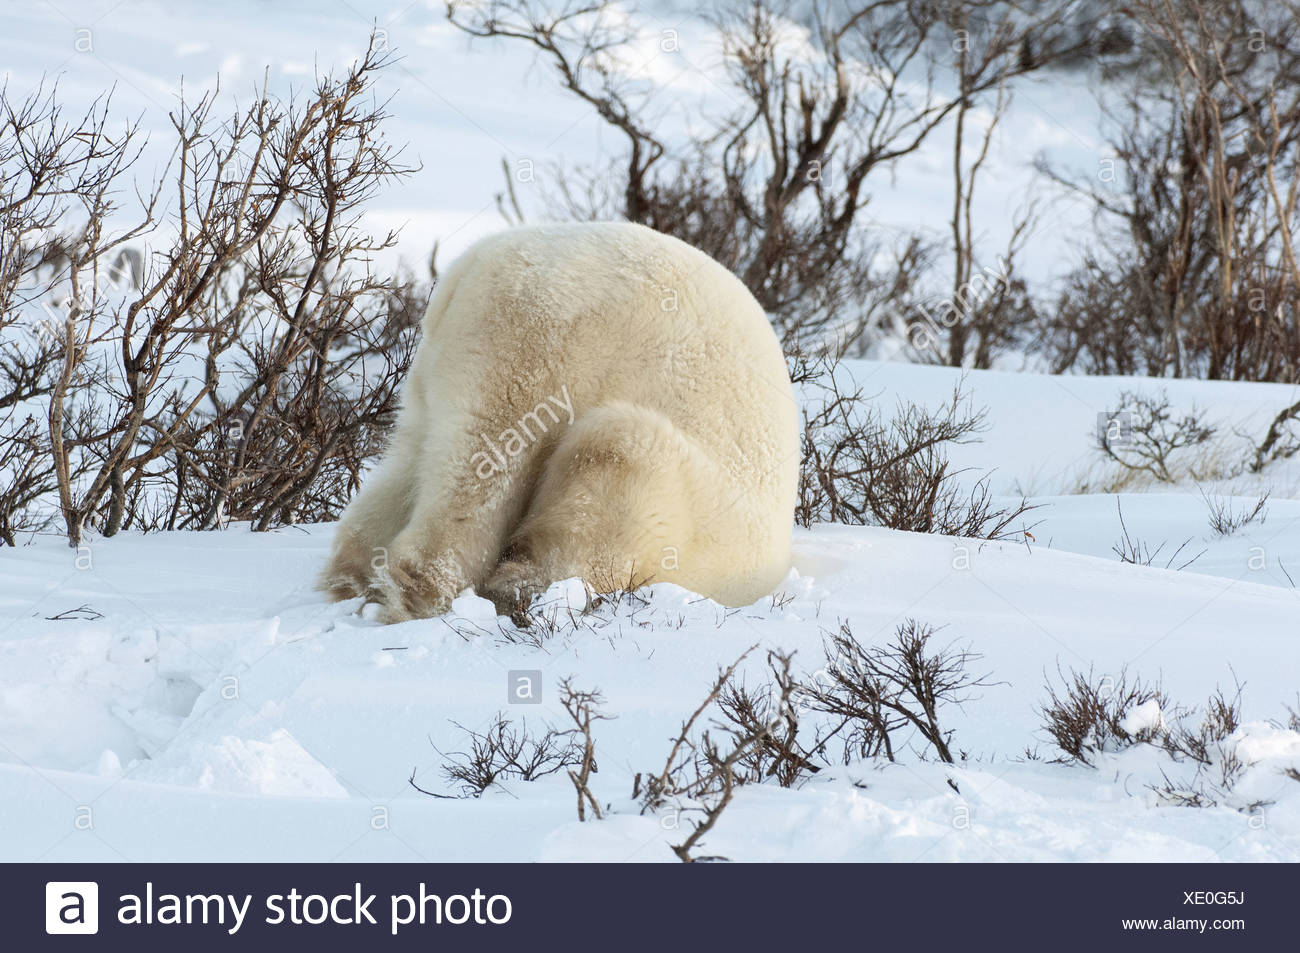 Polar bears in the wild - Stock Image